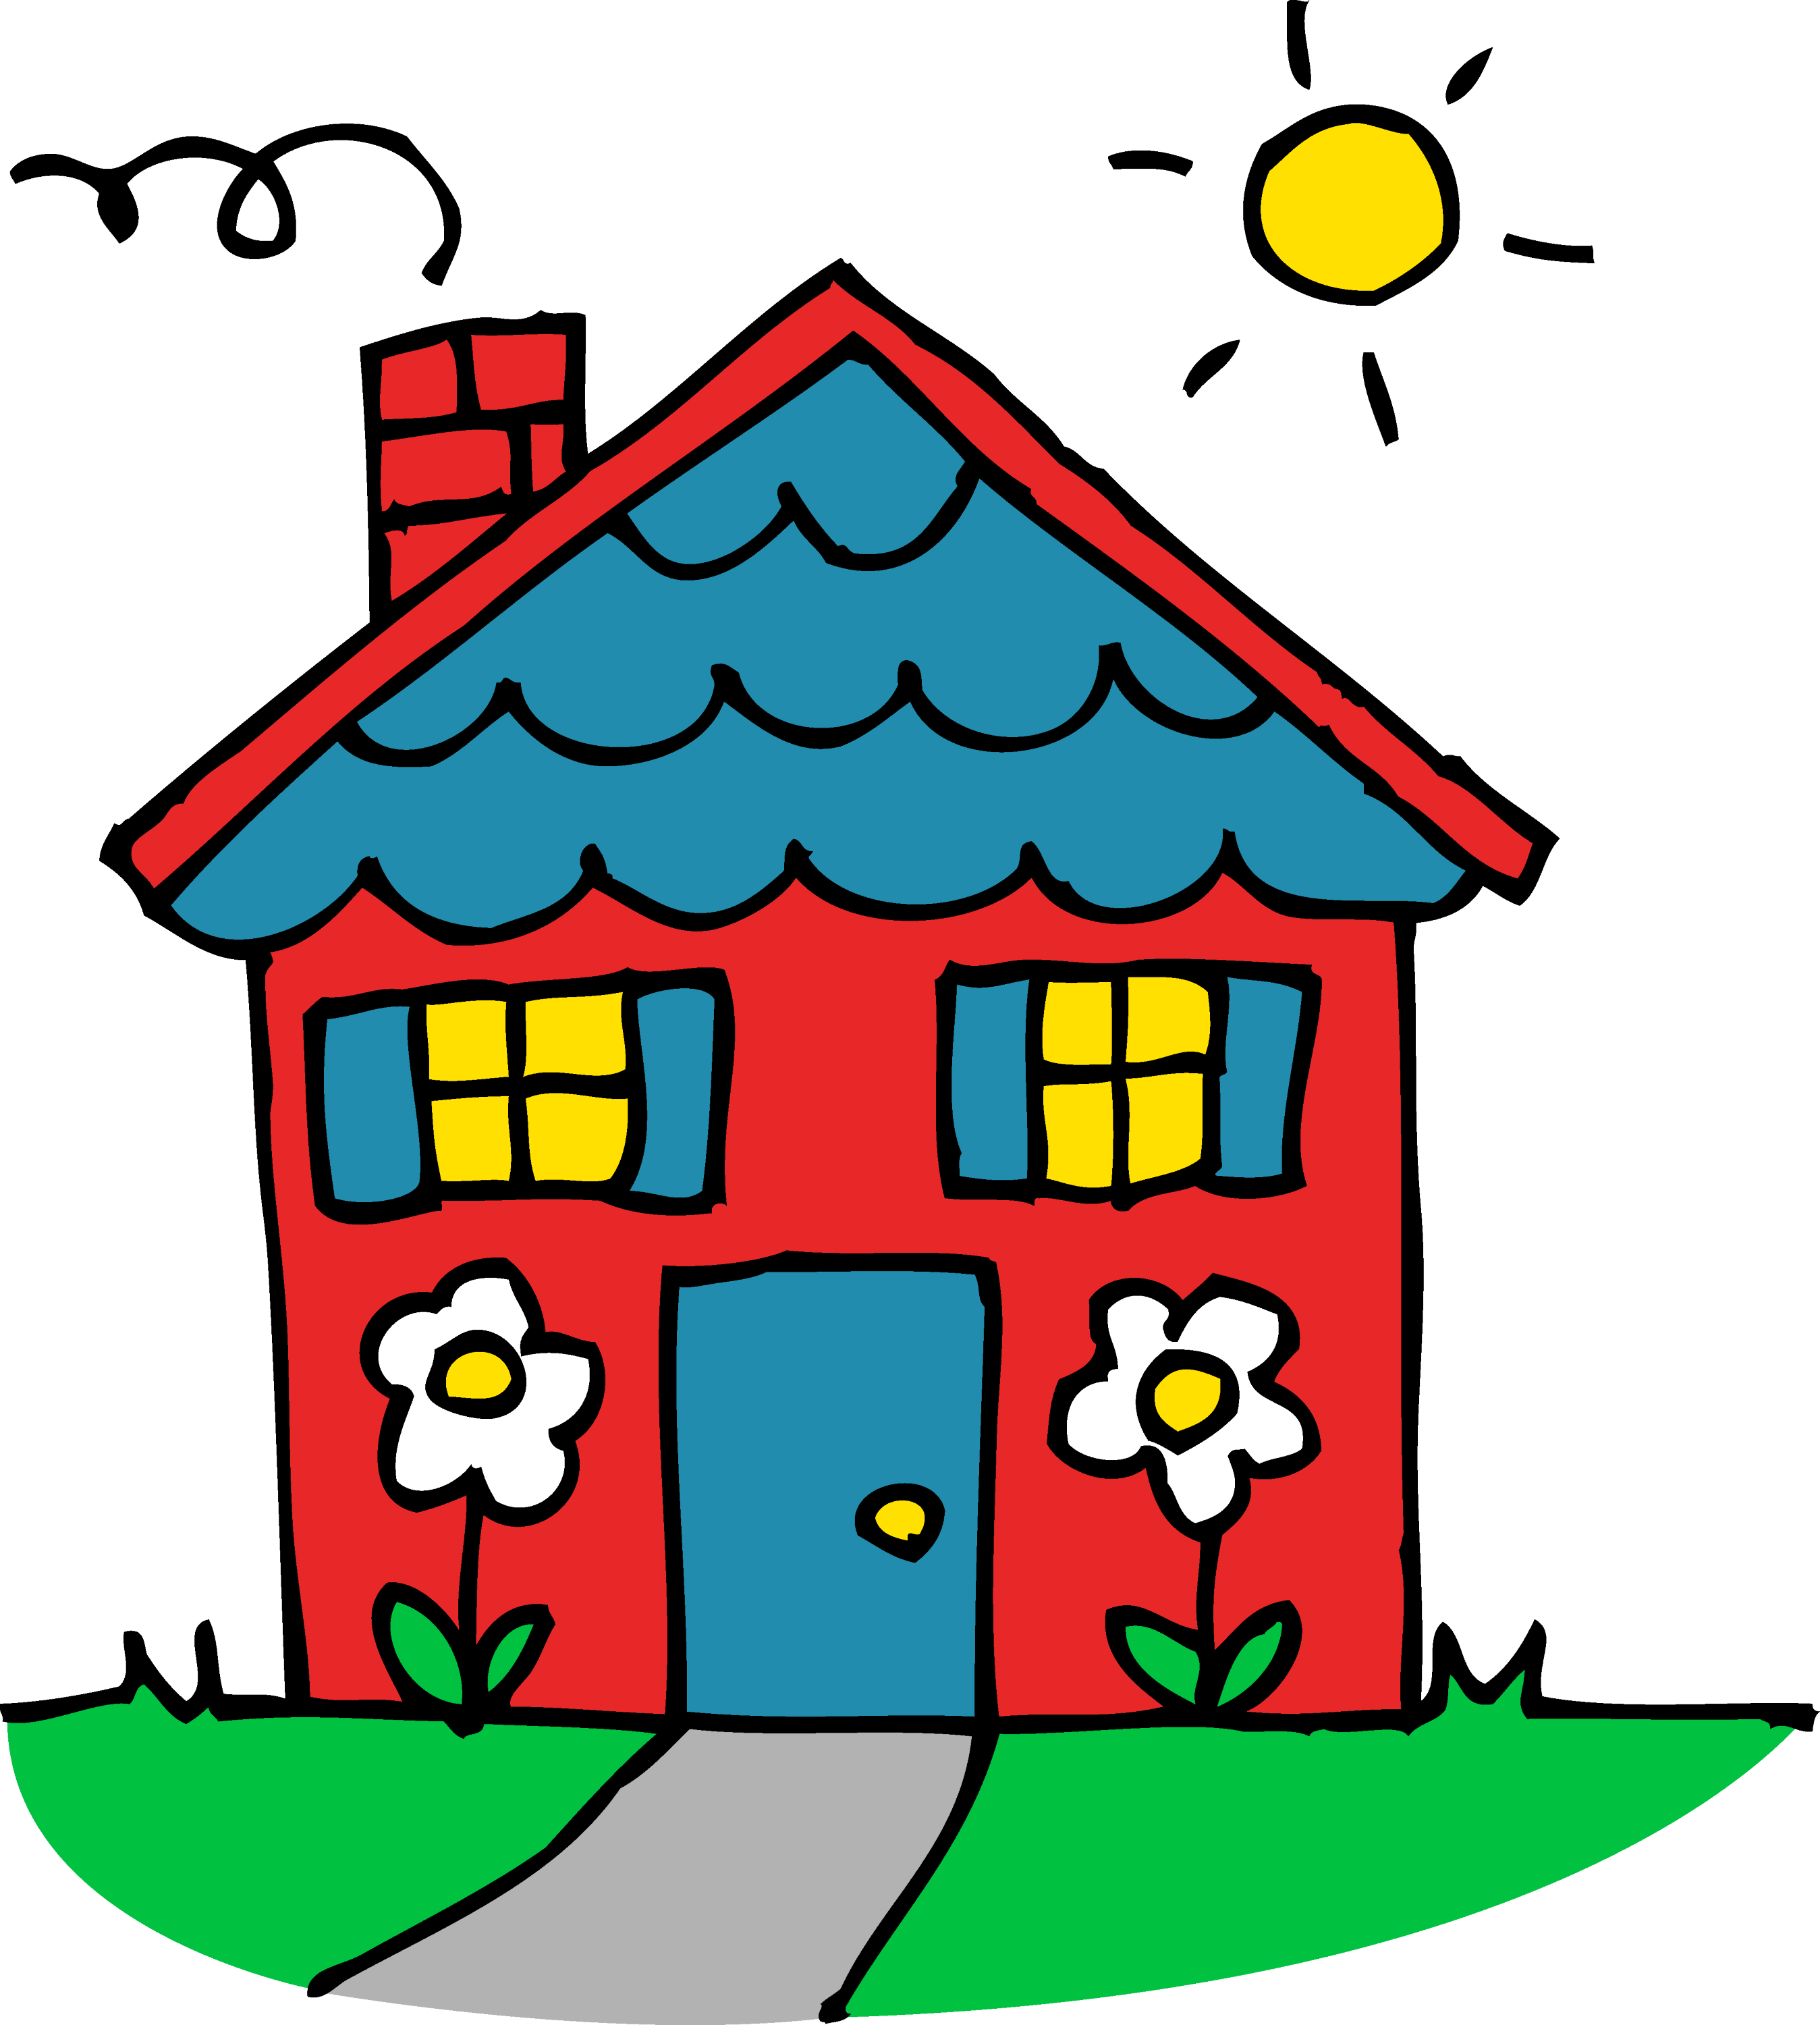 charming little red house free clip art rh sweetclipart com house clipart google house clipart no background